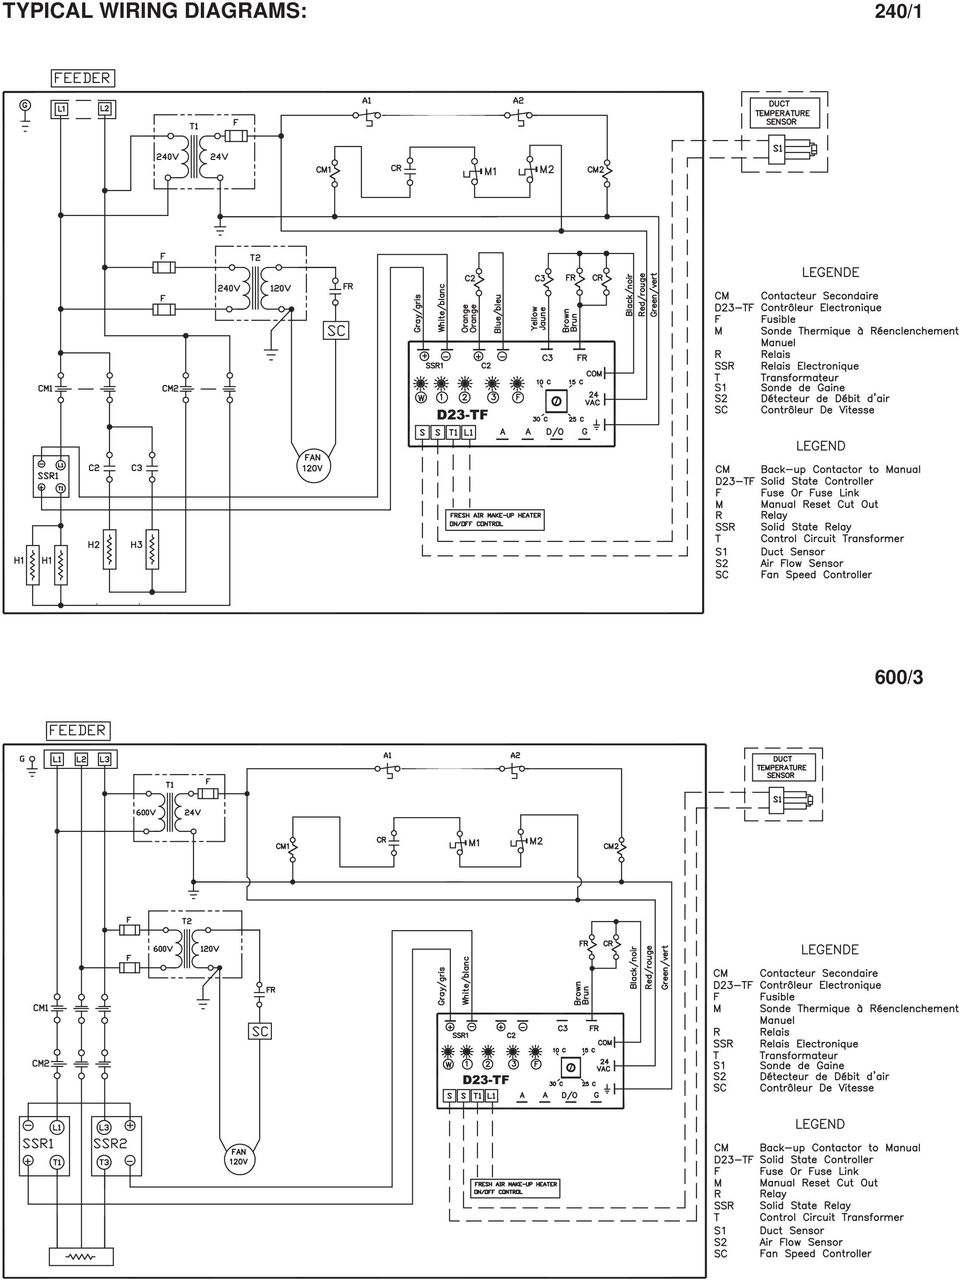 Thermolec Duct Heater Wiring Diagram Free Download Fan Speed Control Installation Instructions For Mini Make Up Air Model Fer Pdf